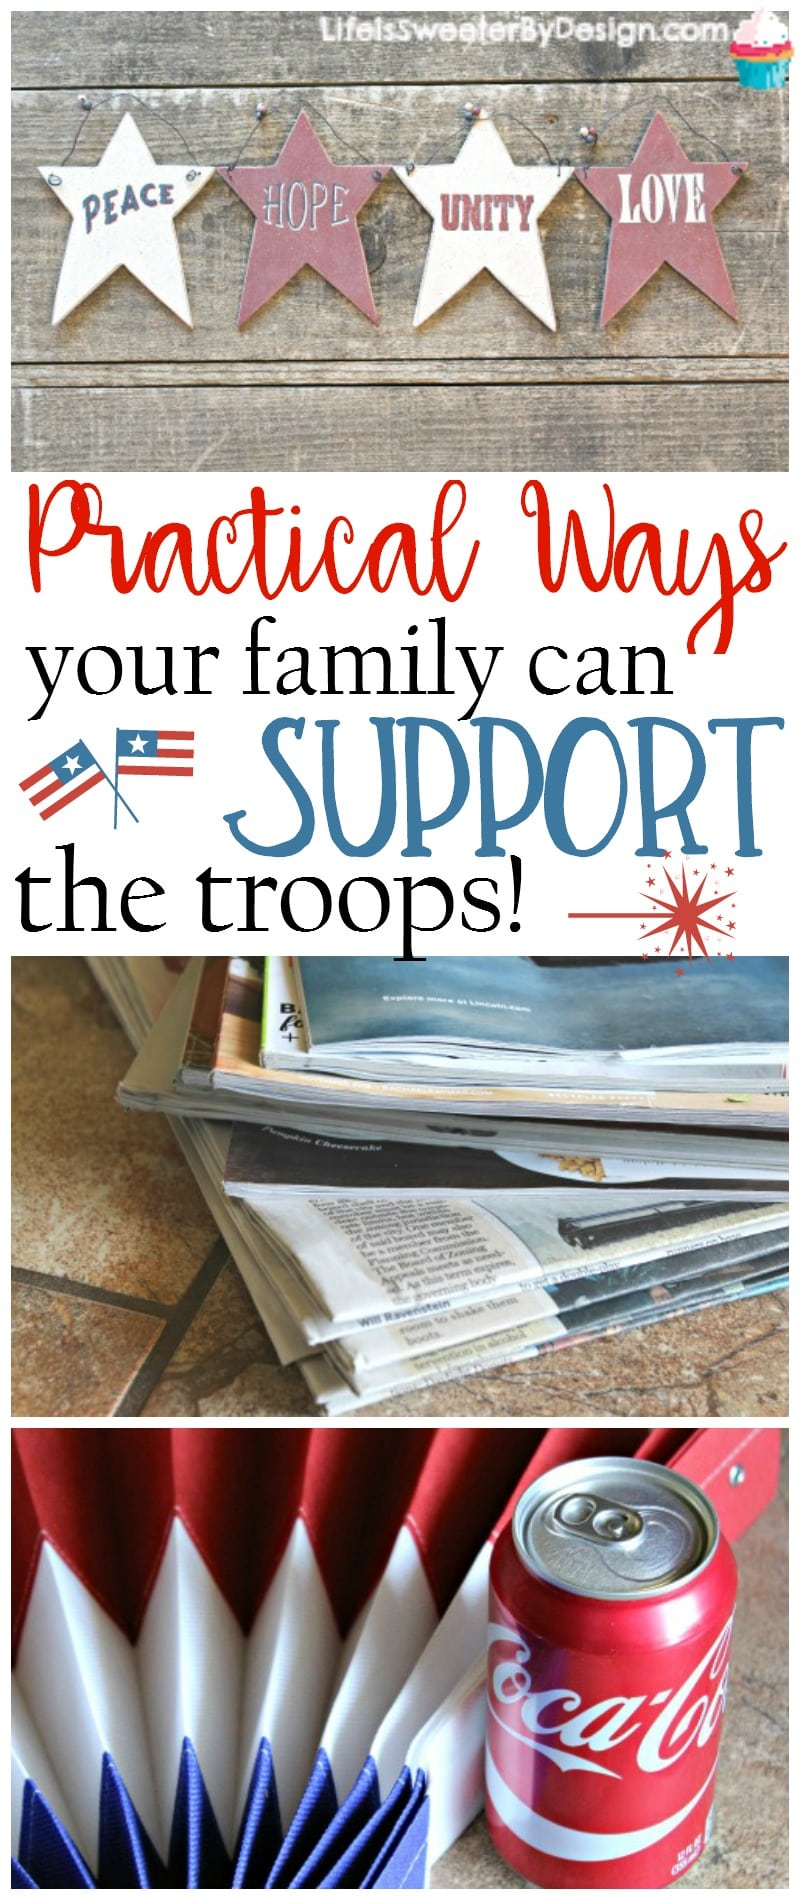 Practical ways your family can support the troops are easy and helpful to our soldiers. Supporting the military doesn't have to be hard!